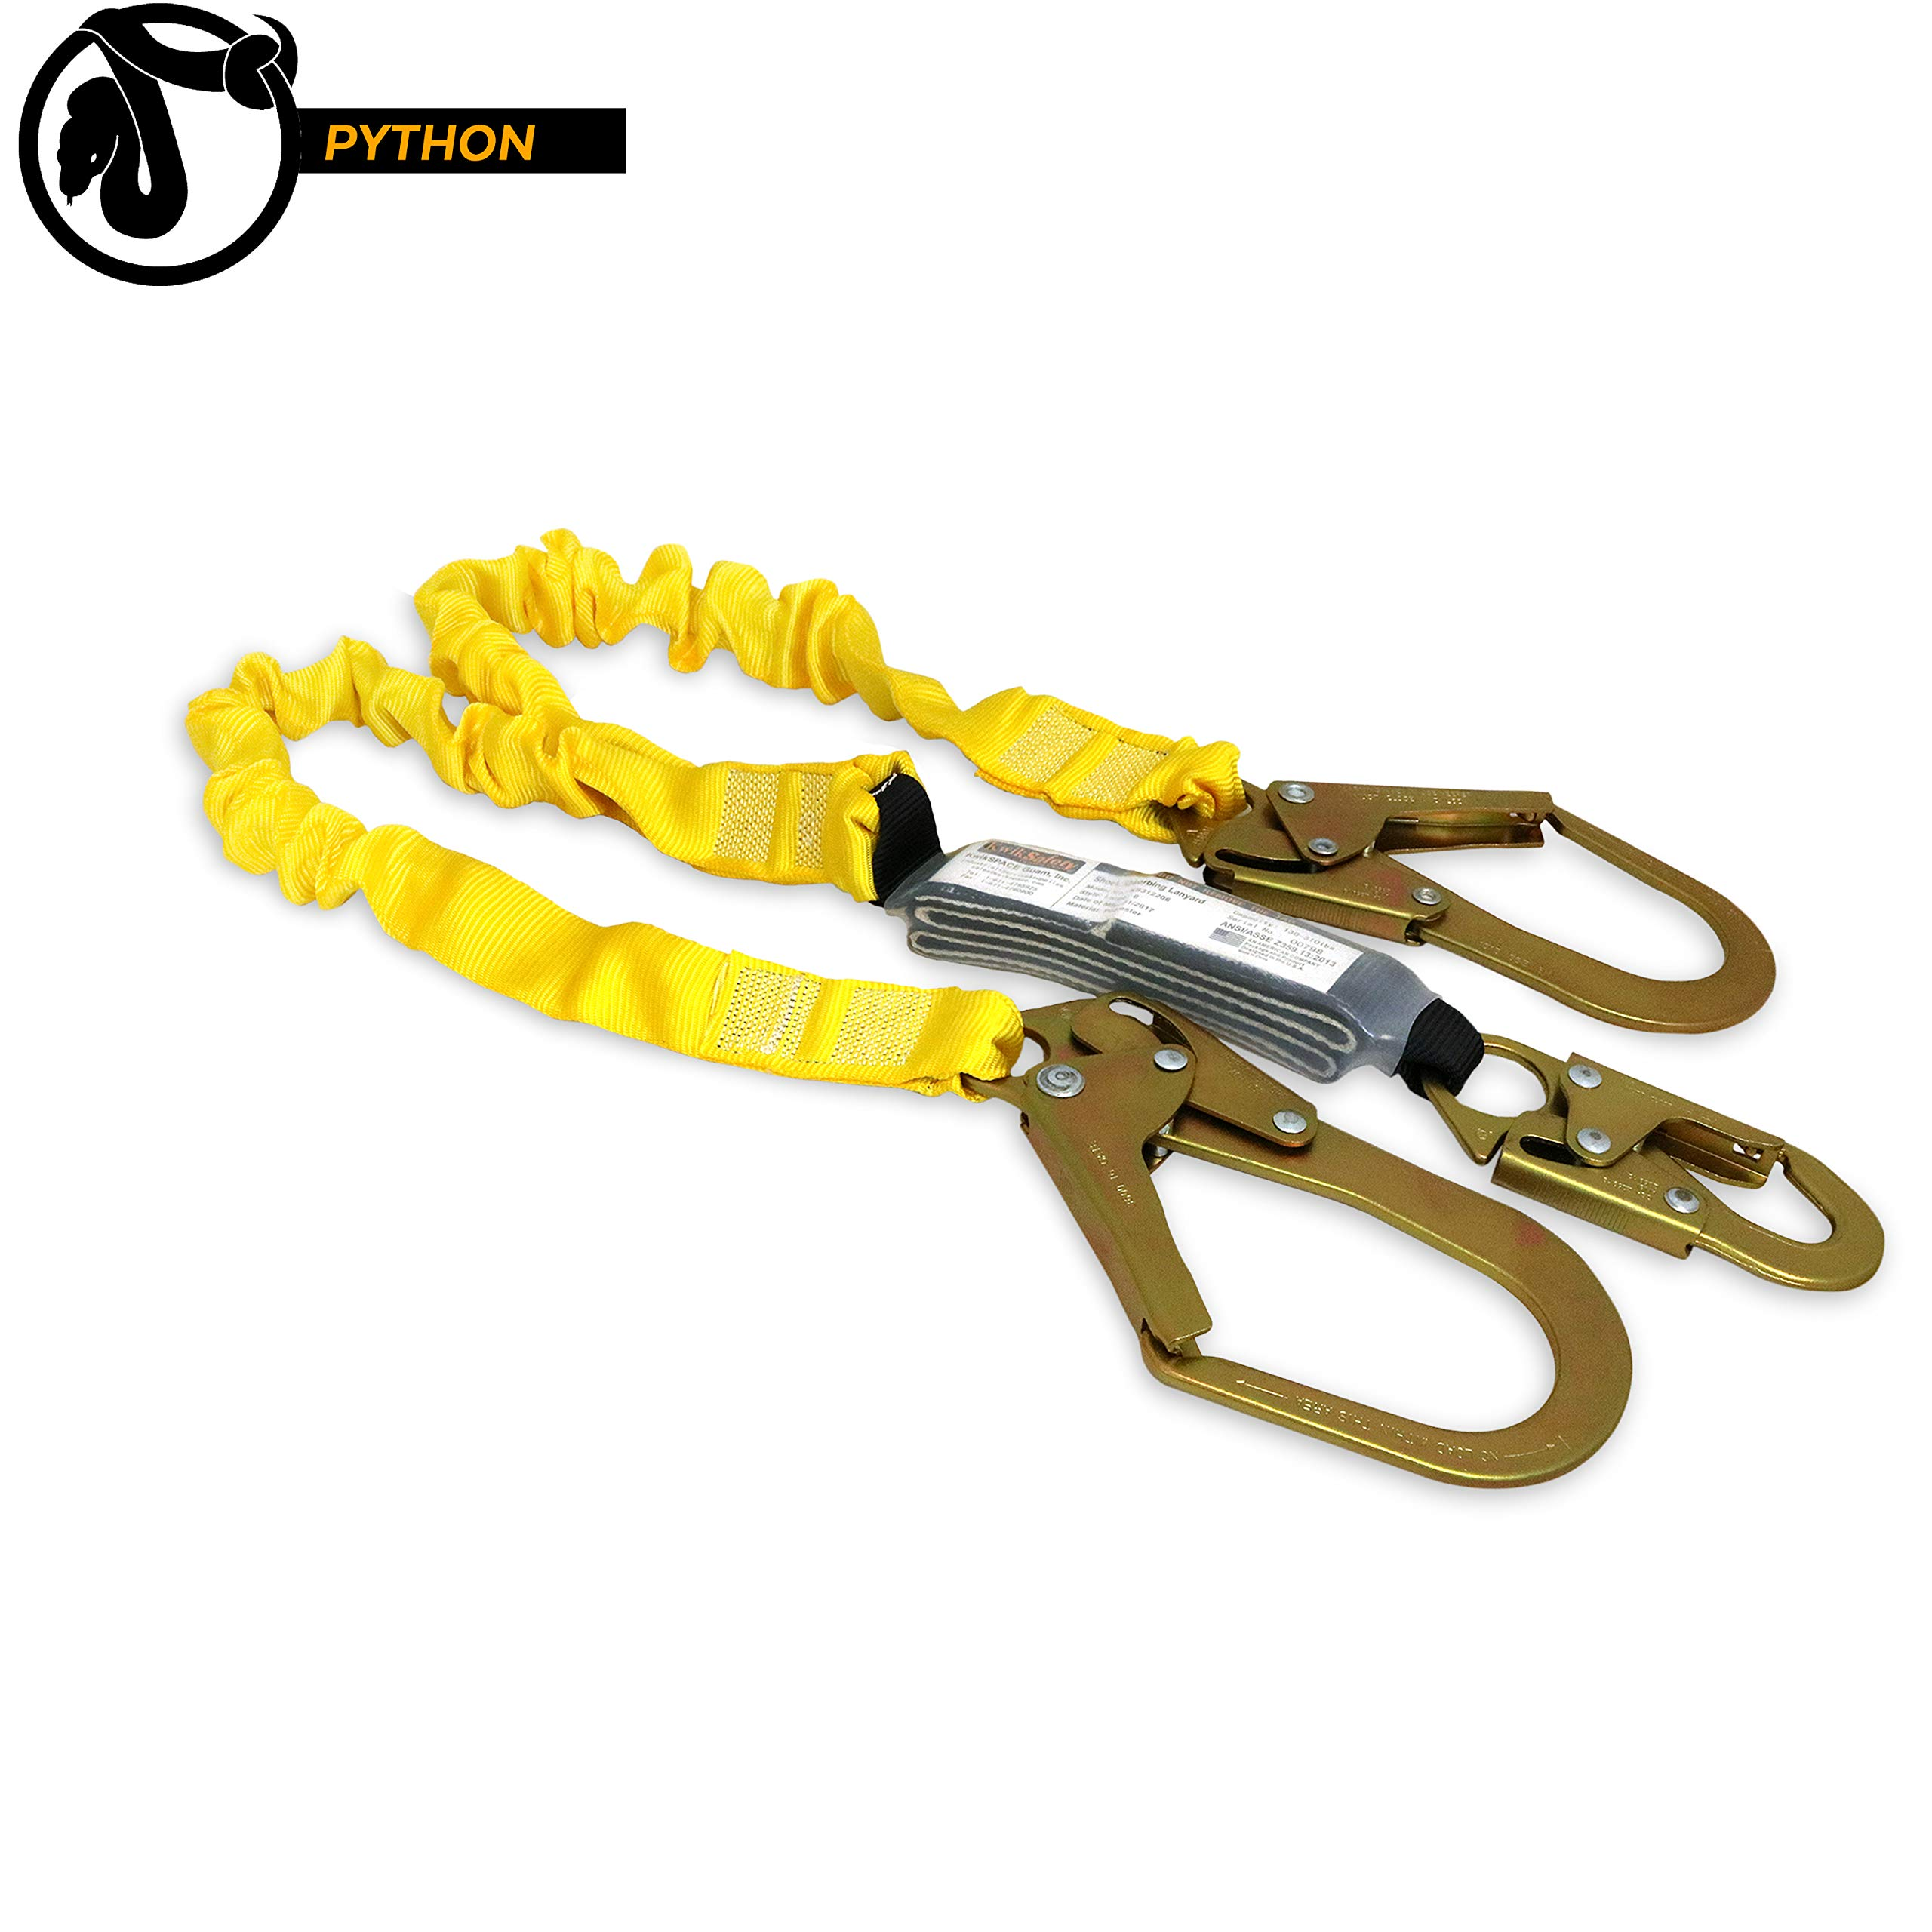 KwikSafety (Charlotte, NC) Python | Double Leg 6foot Tubular Stretch Safety Lanyard | OSHA ANSI Fall Protection External Shock Absorber Construction Arborist Roofing Snap and Rebar Hook Connector by KwikSafety